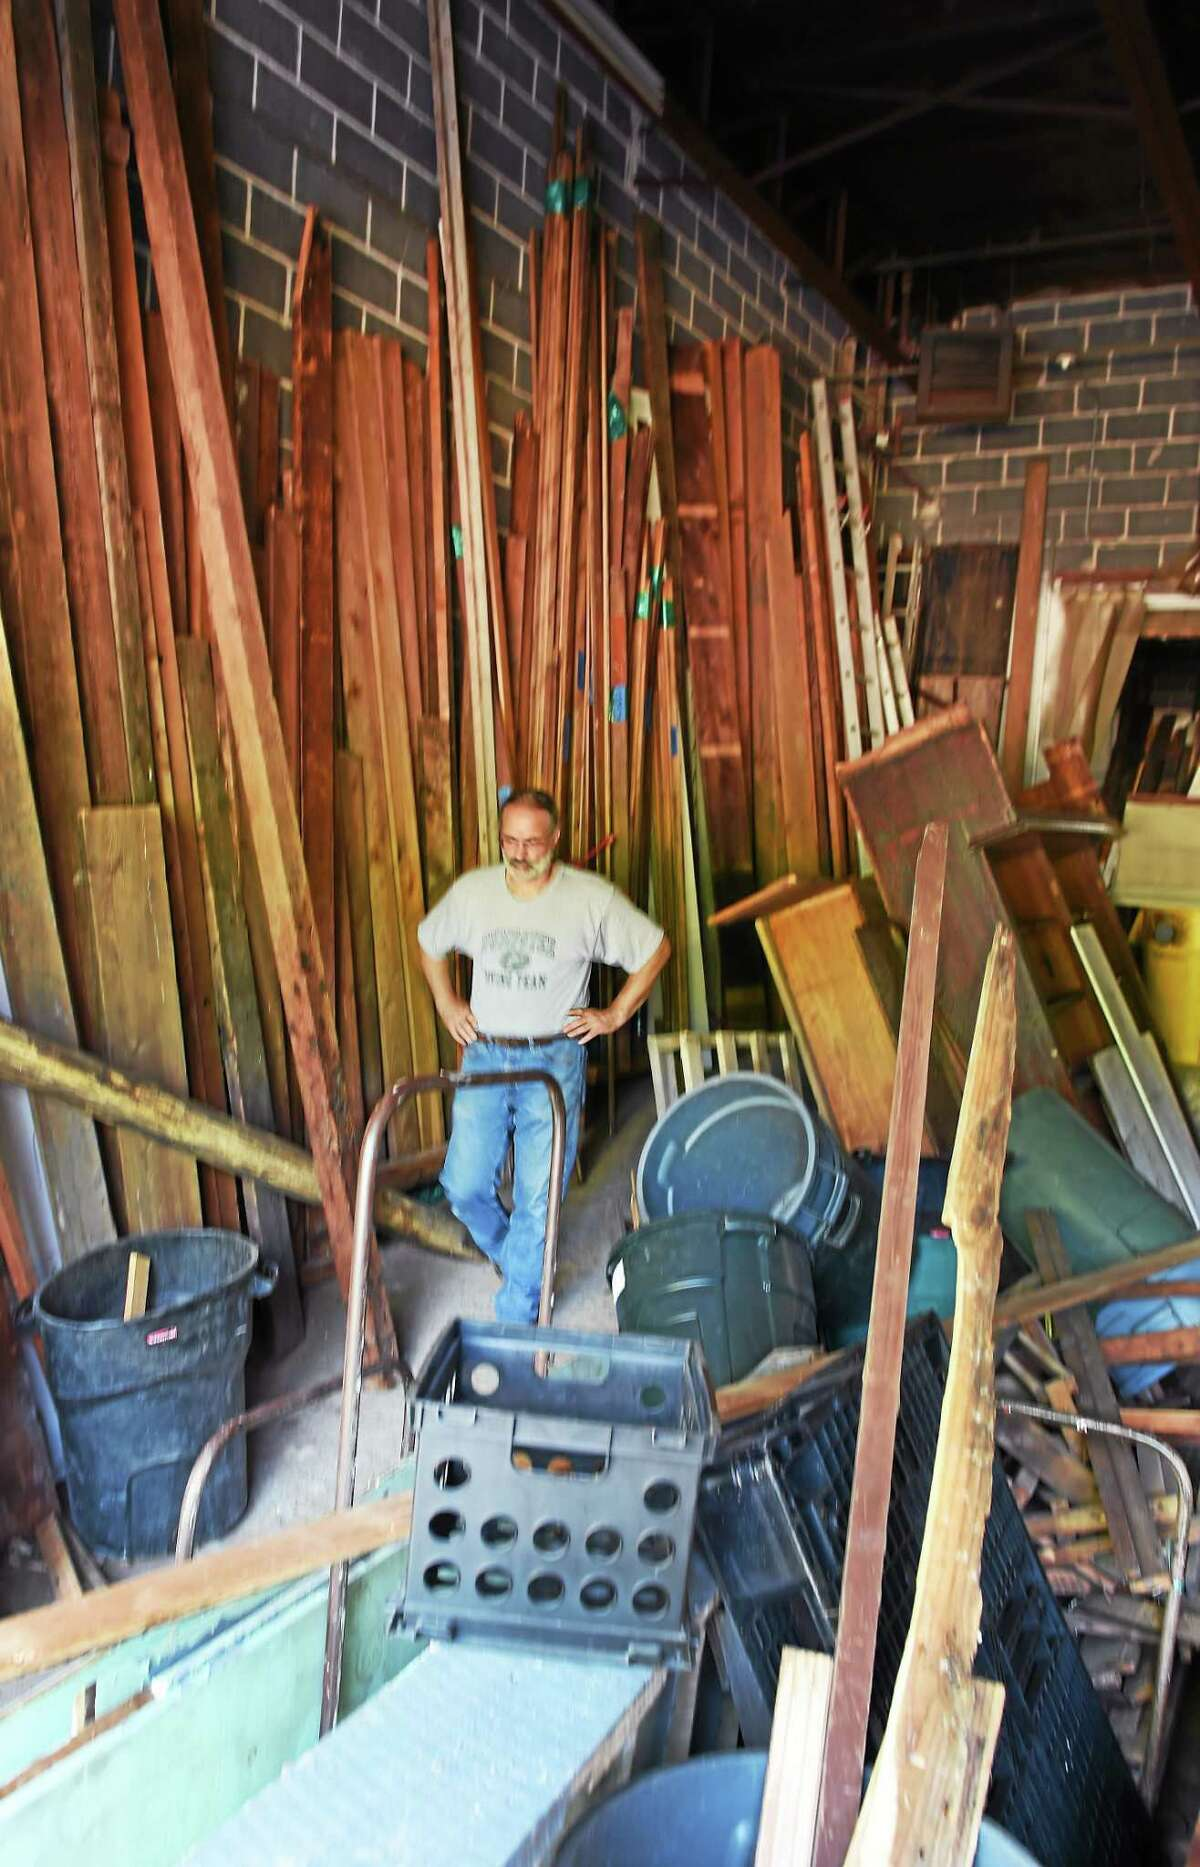 One man's junk is another man's treasure. Urban Miners, owned by Joe DeRisi in Hamden, Connecticut is a salvage company that deconstructs older homes and buildings slated for demolition, selling the salvaged materials, goods, artifacts and objects found in the homes to anyone looking for a deal. A specialty of Urban Miners and DeRisi is antique wooden flooring. Urban Miners is what some today would a recycling company.